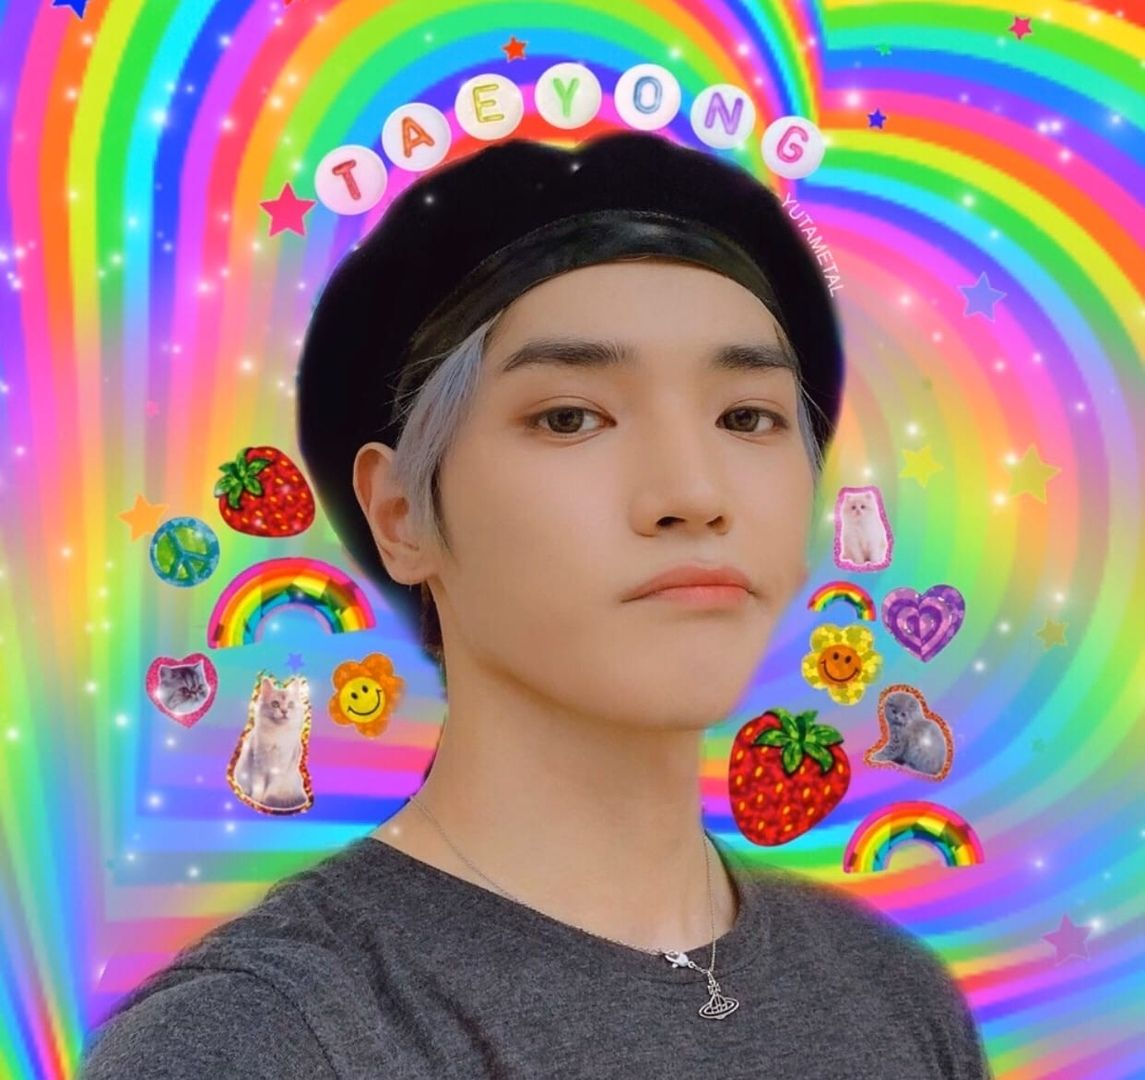 #𝗵𝗮𝗿𝘂𝗺𝘂𝗻𝗶༉ ₊˚ in 2020 | Rainbow aesthetic, Taeyong, Nct